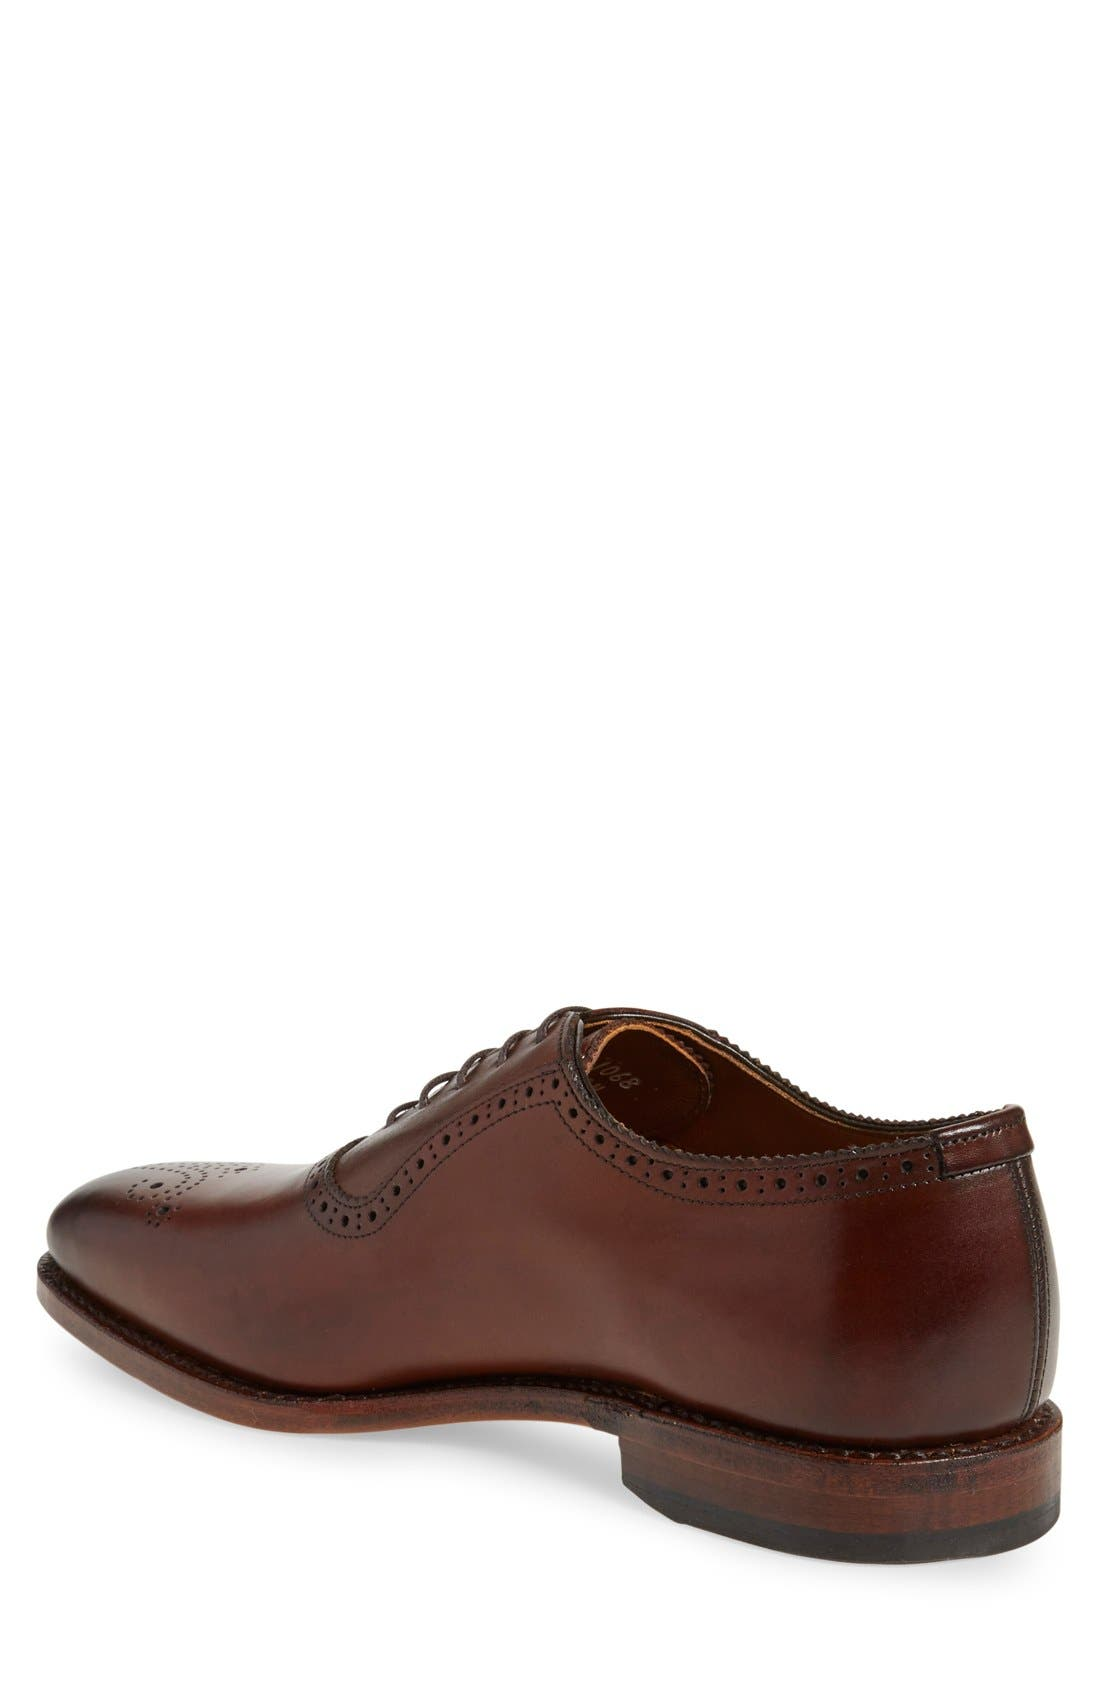 Alternate Image 2  - Allen Edmonds 'Cornwallis' Medallion Toe Oxford (Men)